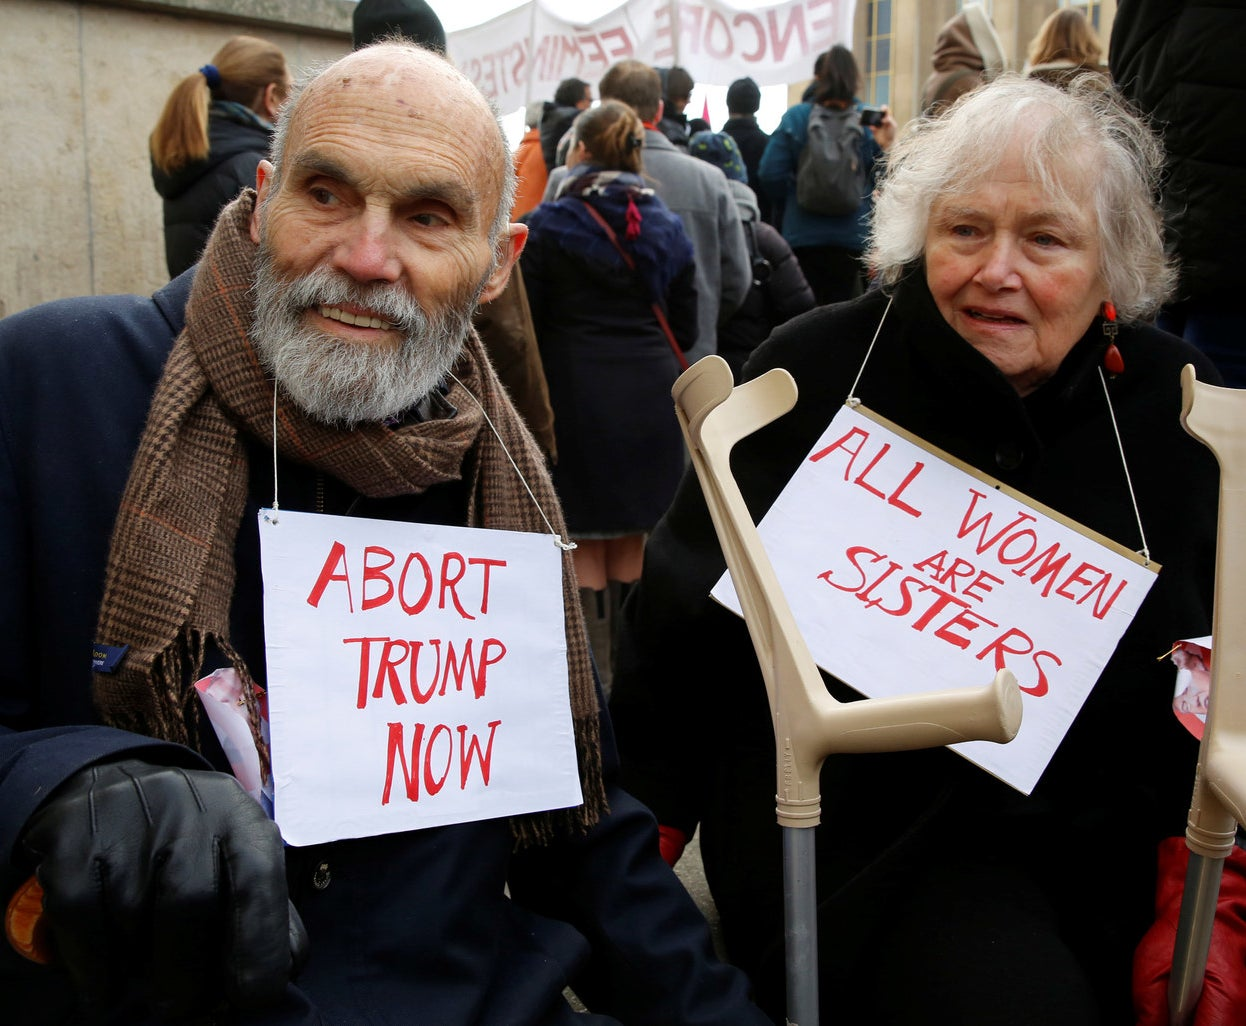 An older man takes part in the Women's March in Paris.